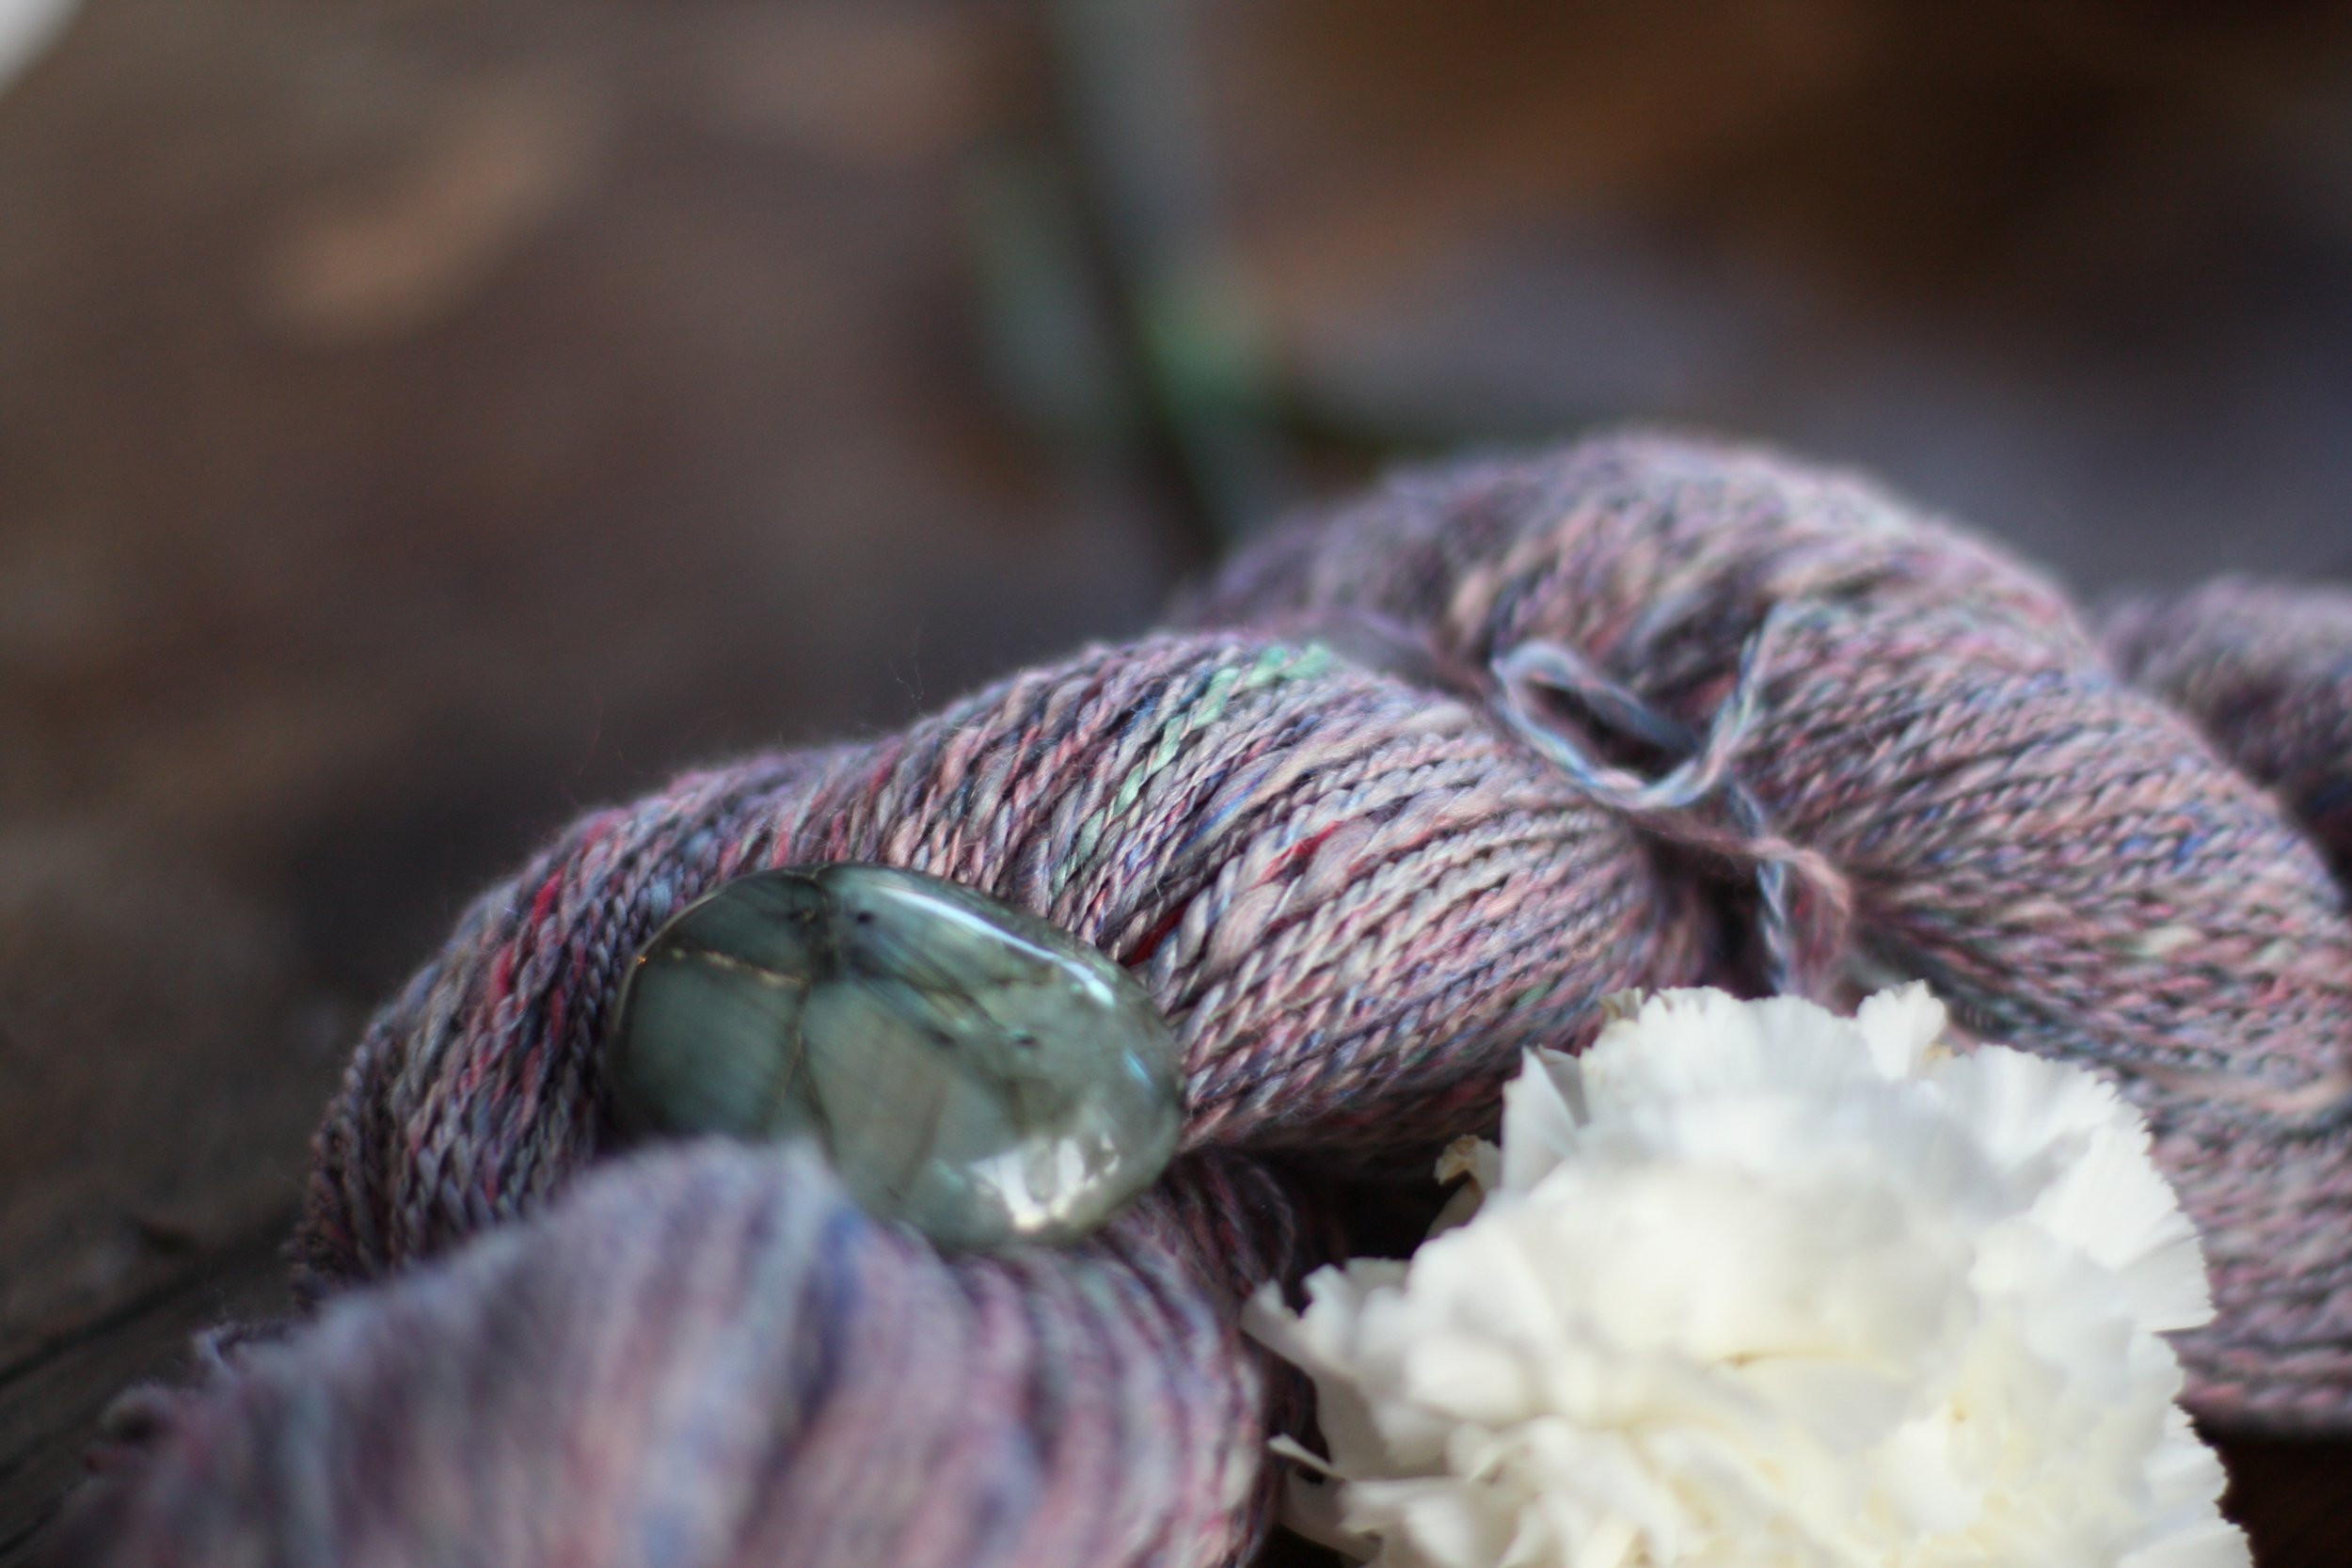 A skein of handspun yarn in pale blues and pinks with a hint of aqua poses with a labradorite stone and a white carnation | 14 Mile Farm Handweaving and Homesteading